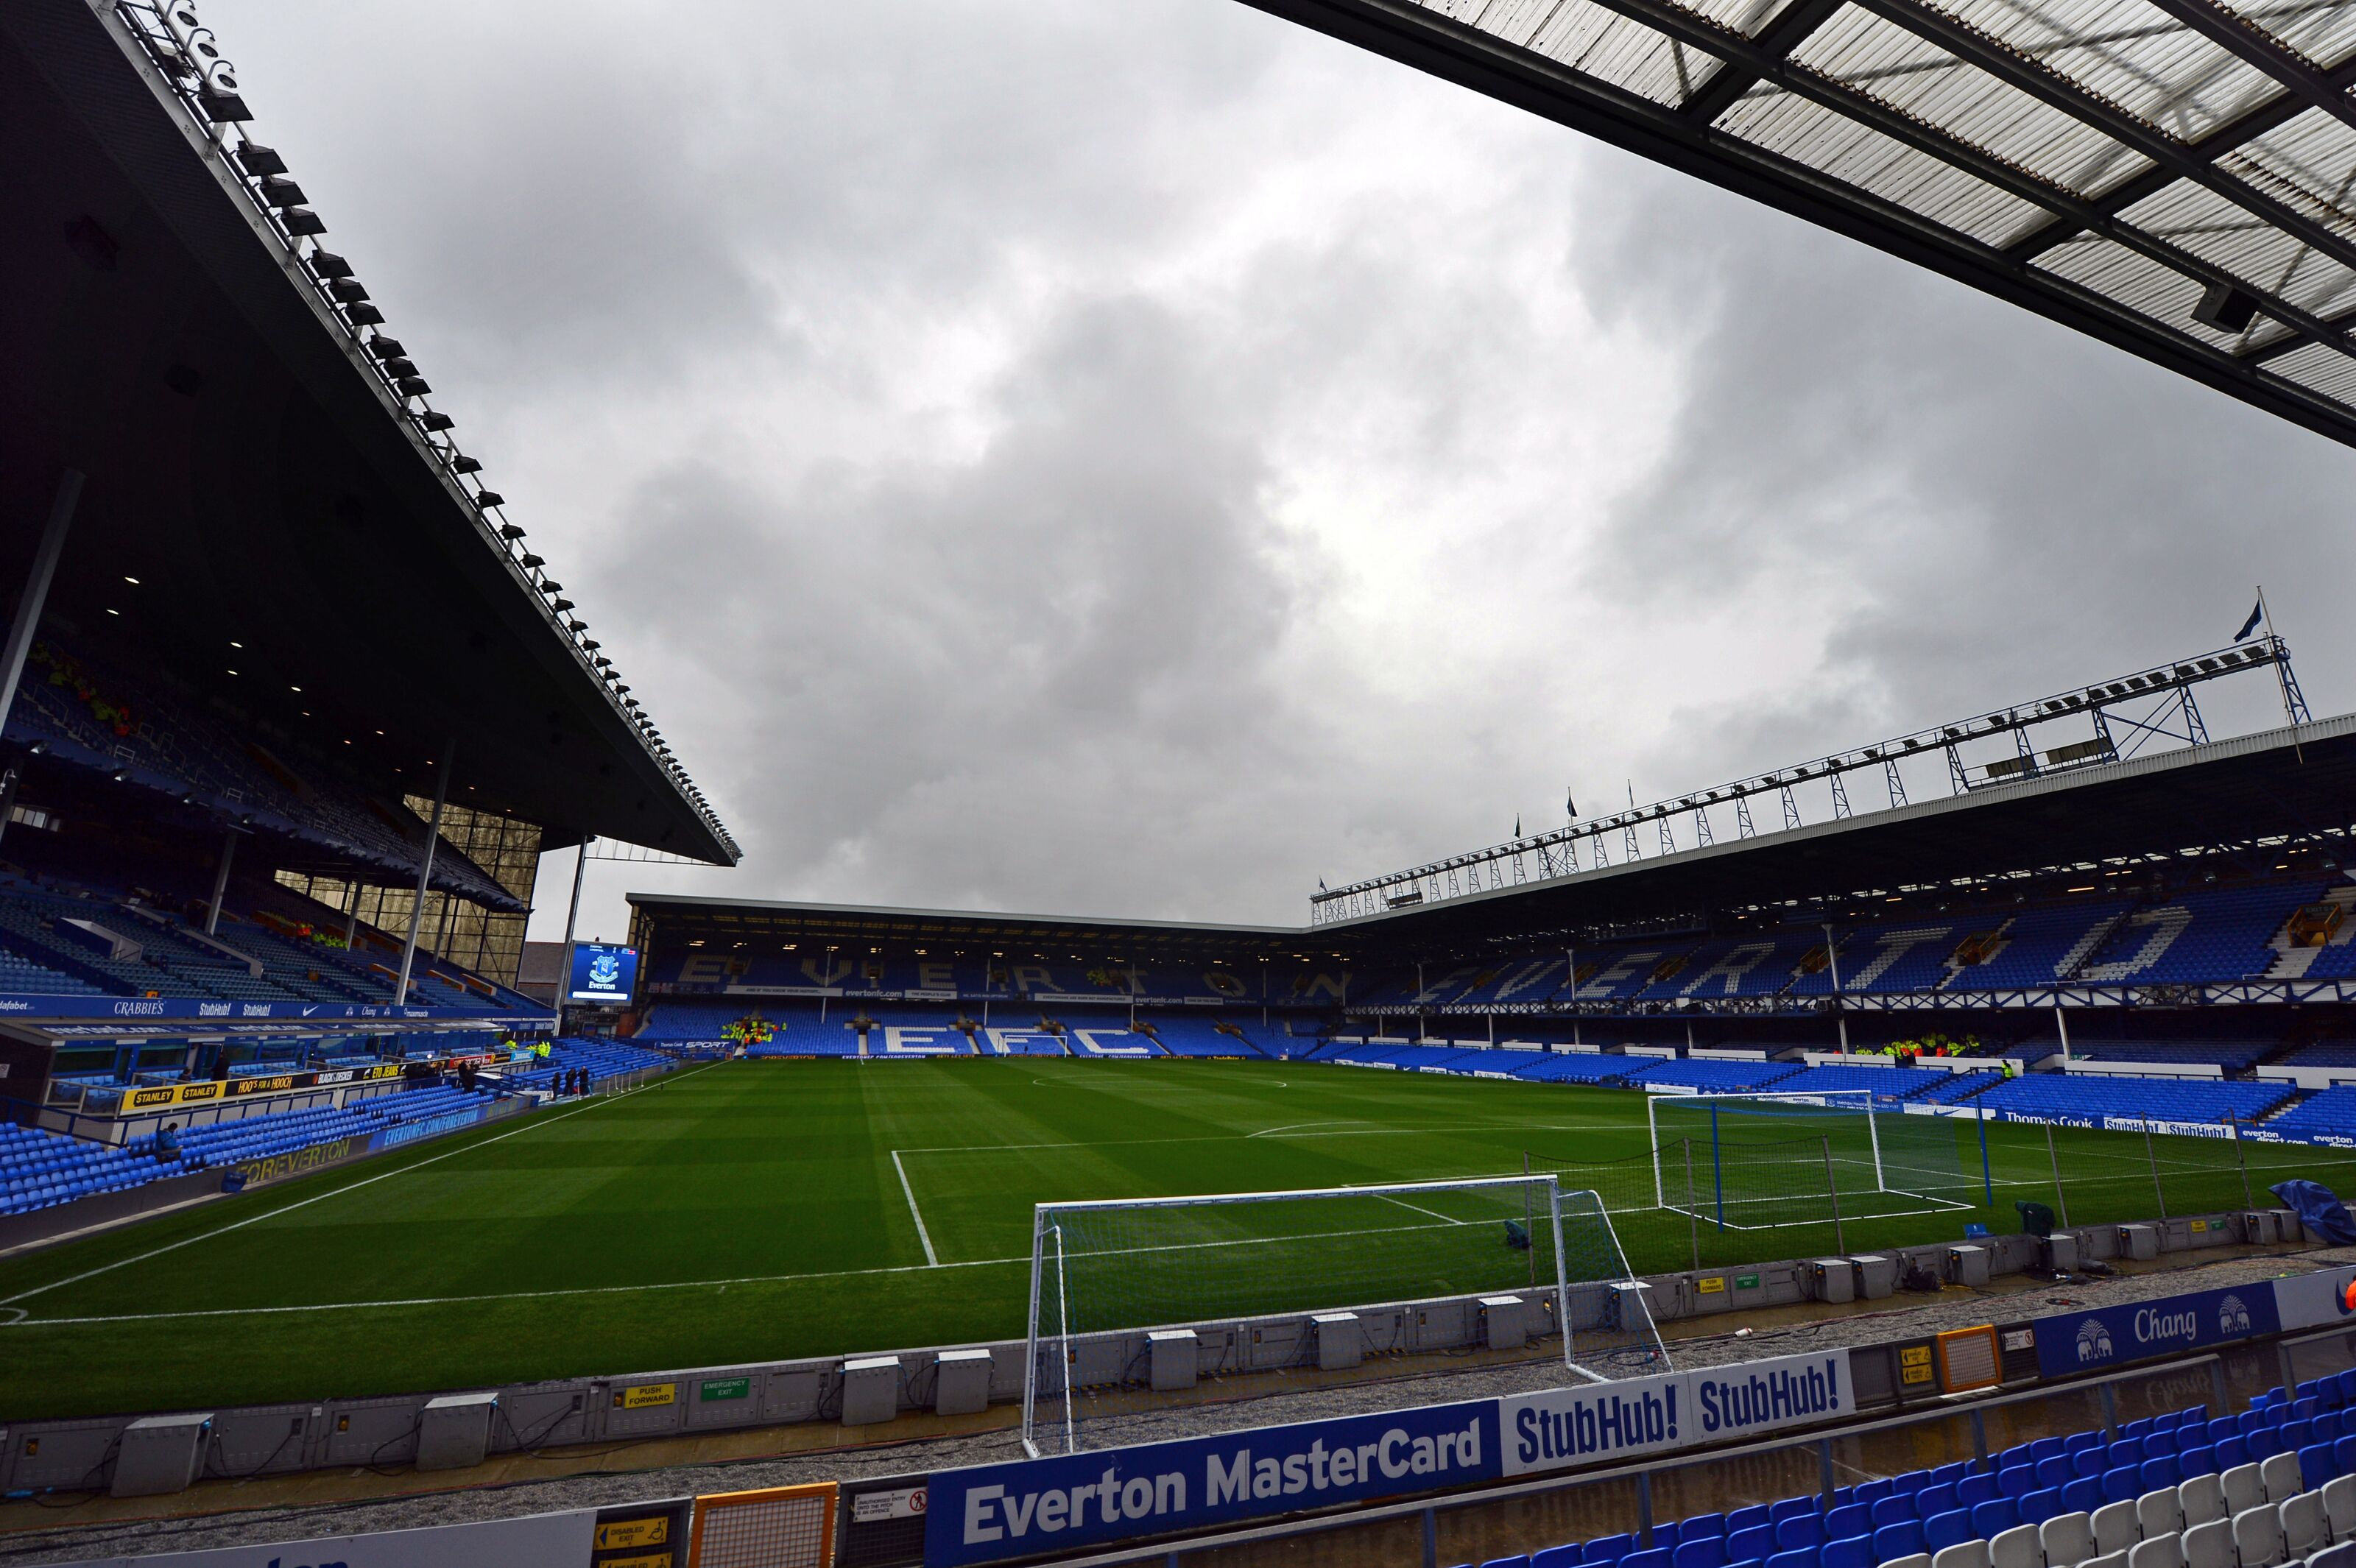 Everton plan to say goodbye to Goodison Park in 2023